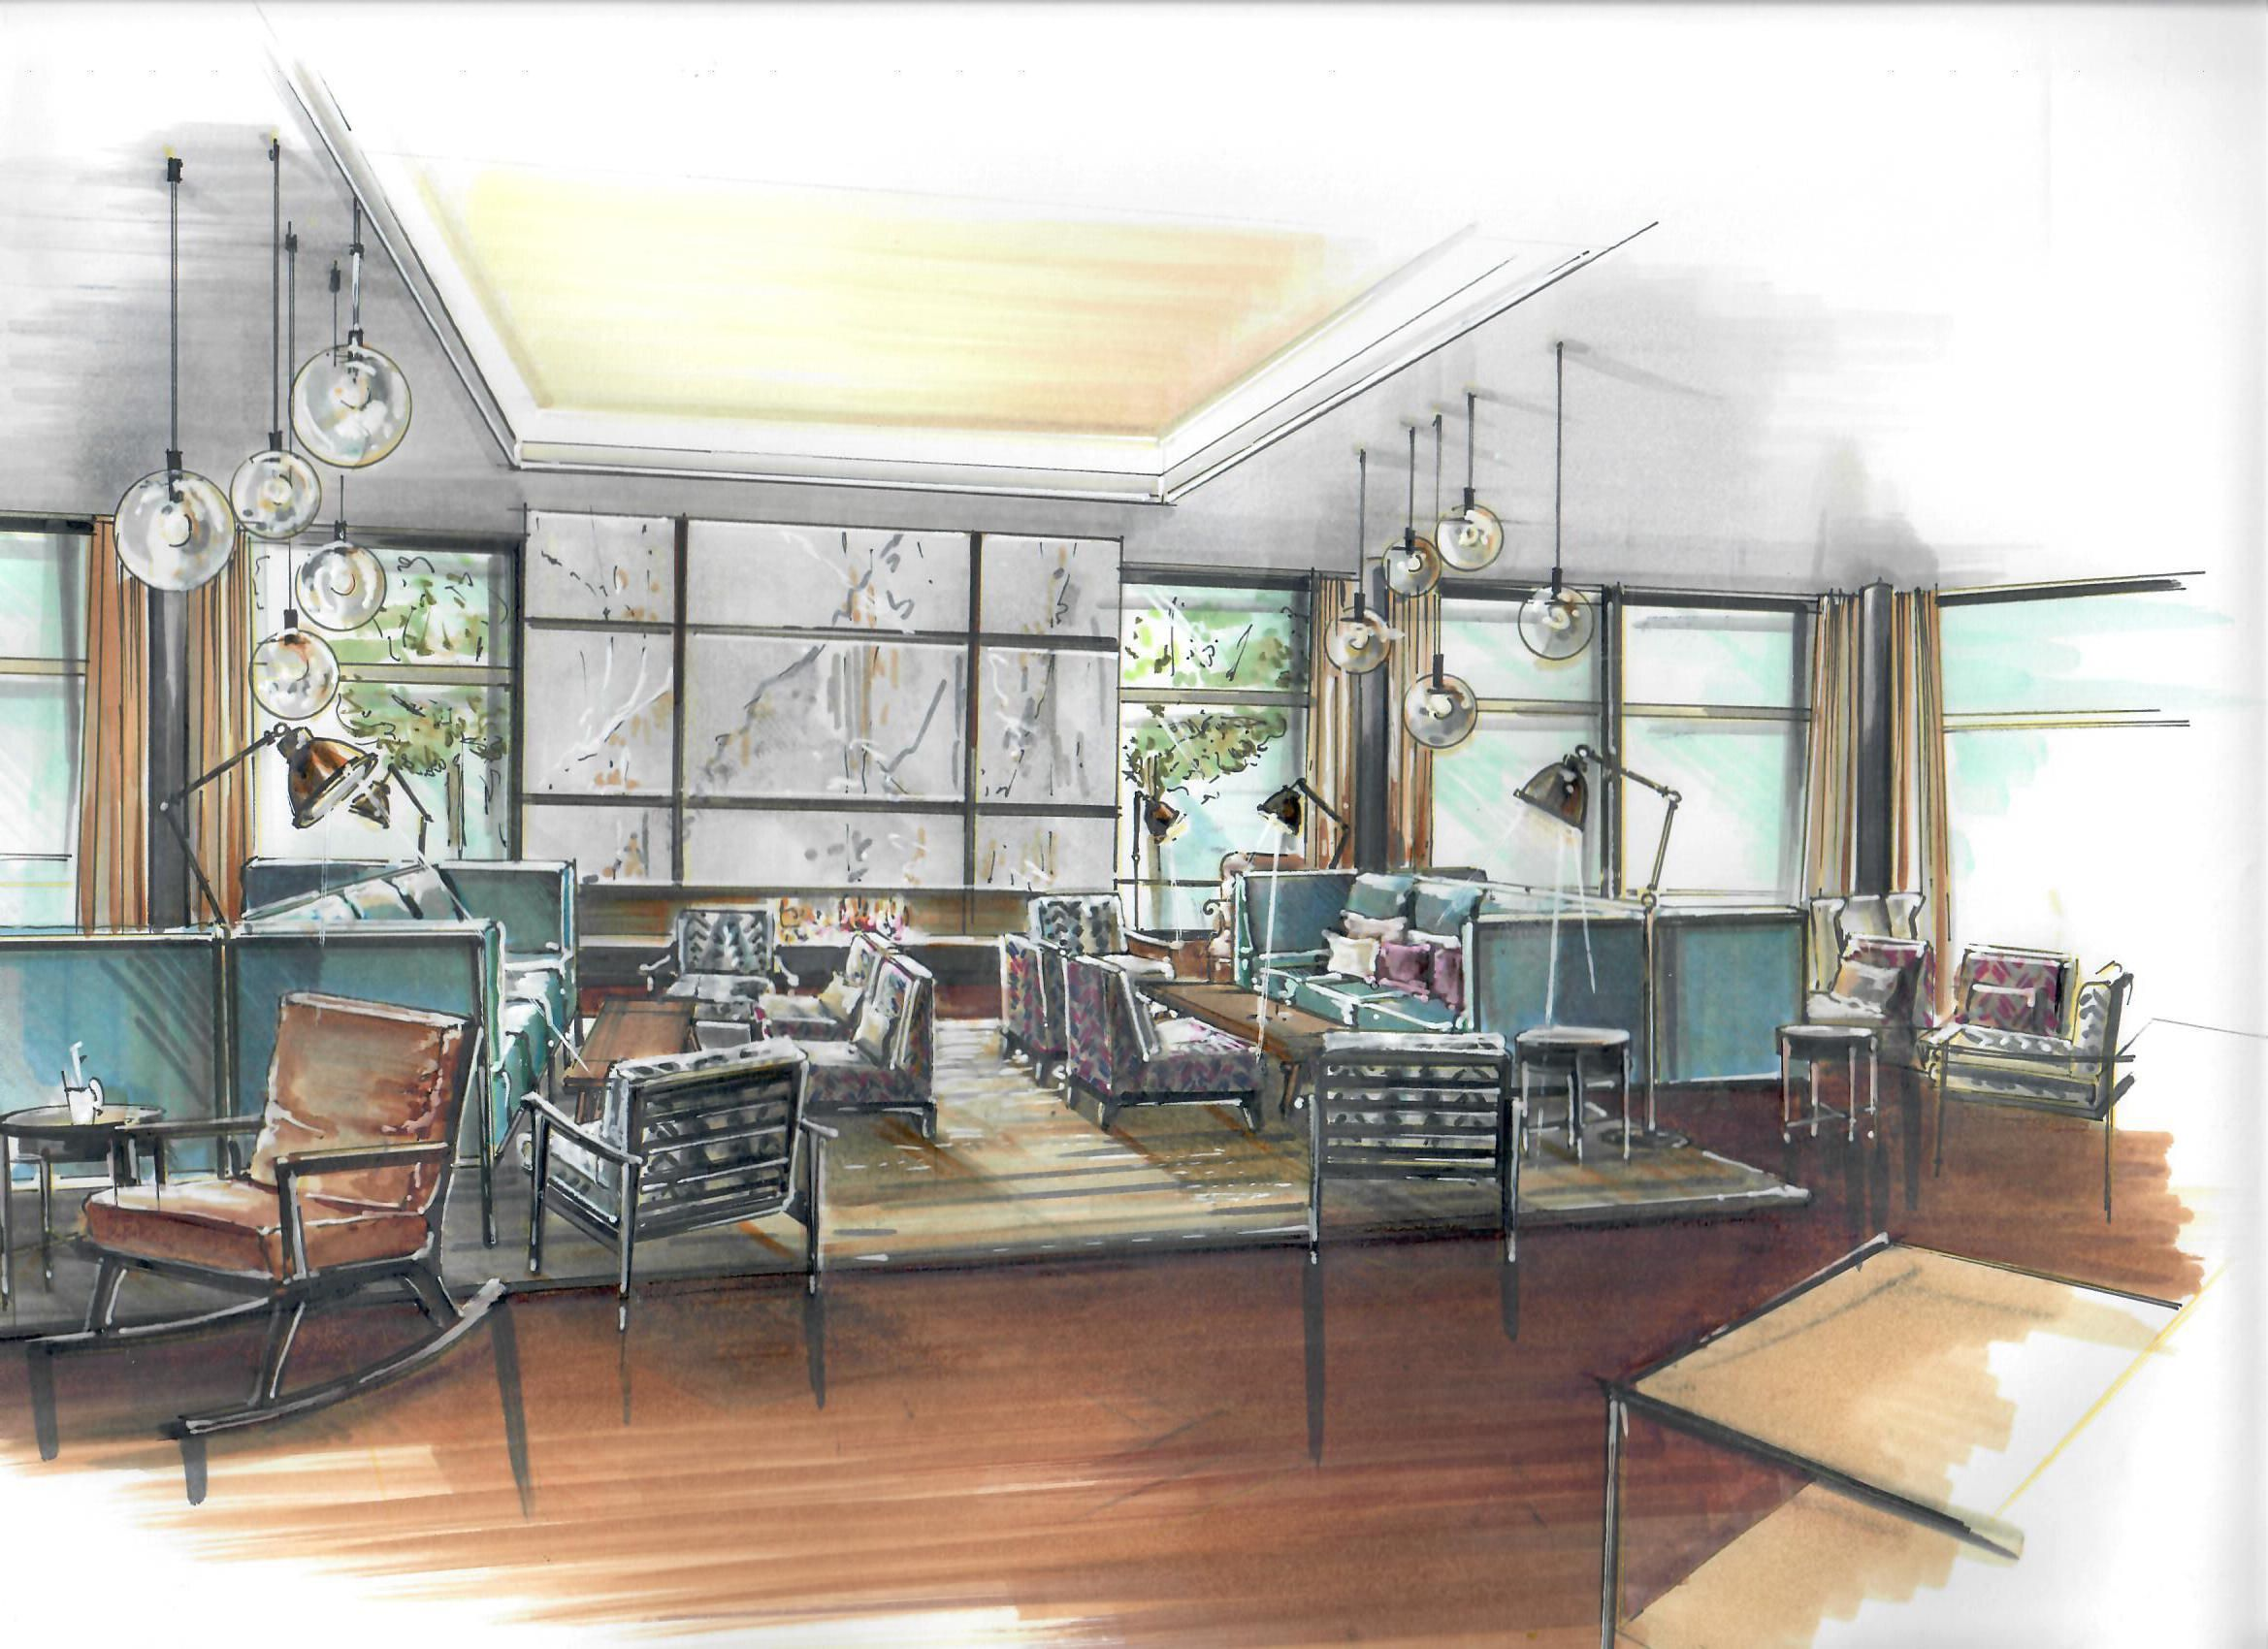 Pin By Kristina Tomita On Architecture Pinterest Sketches Interior Sketch And Interiors